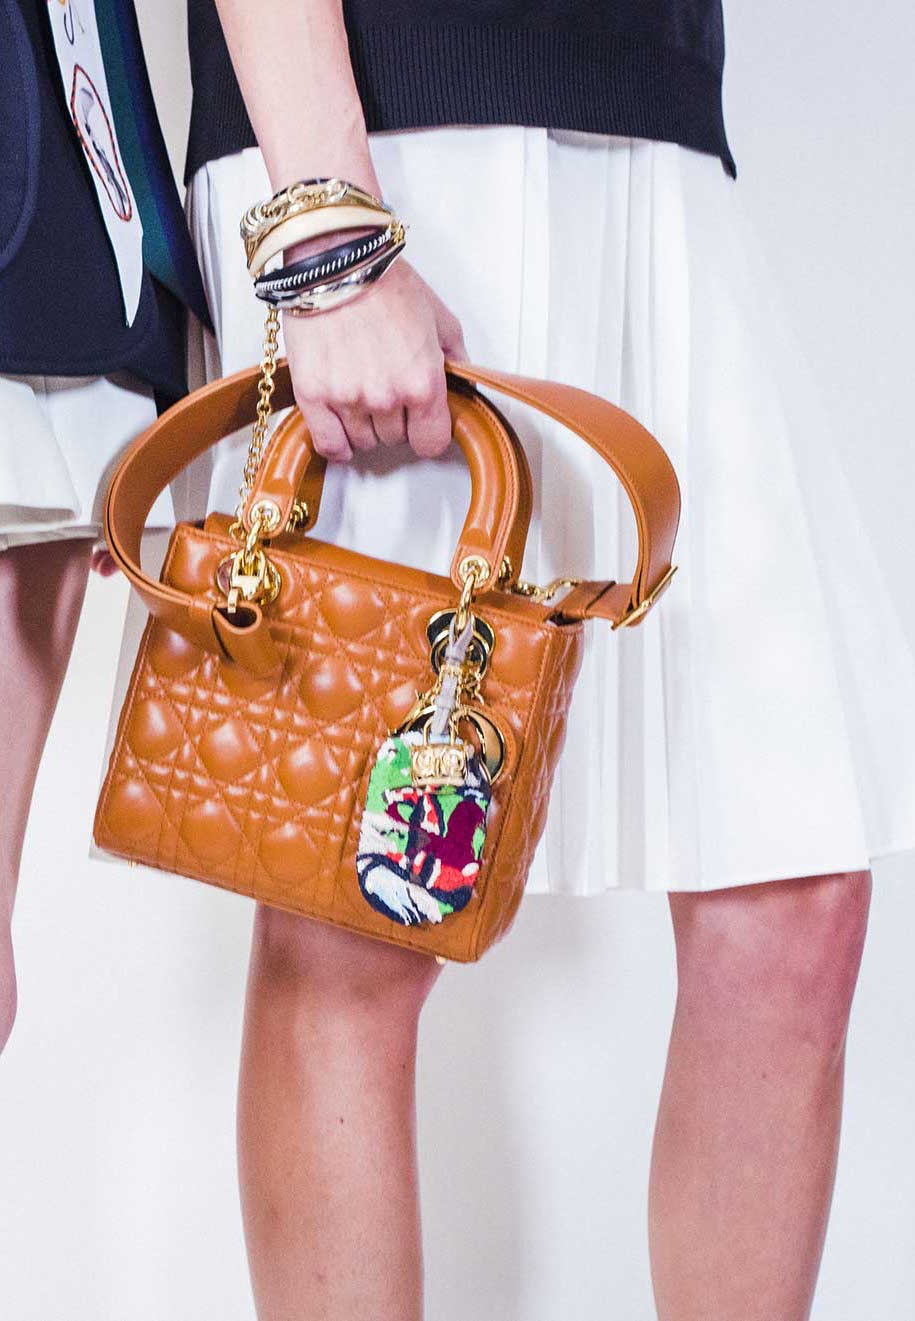 New Small Lady Dior Bag From Cruise 2017 Spotted Fashion